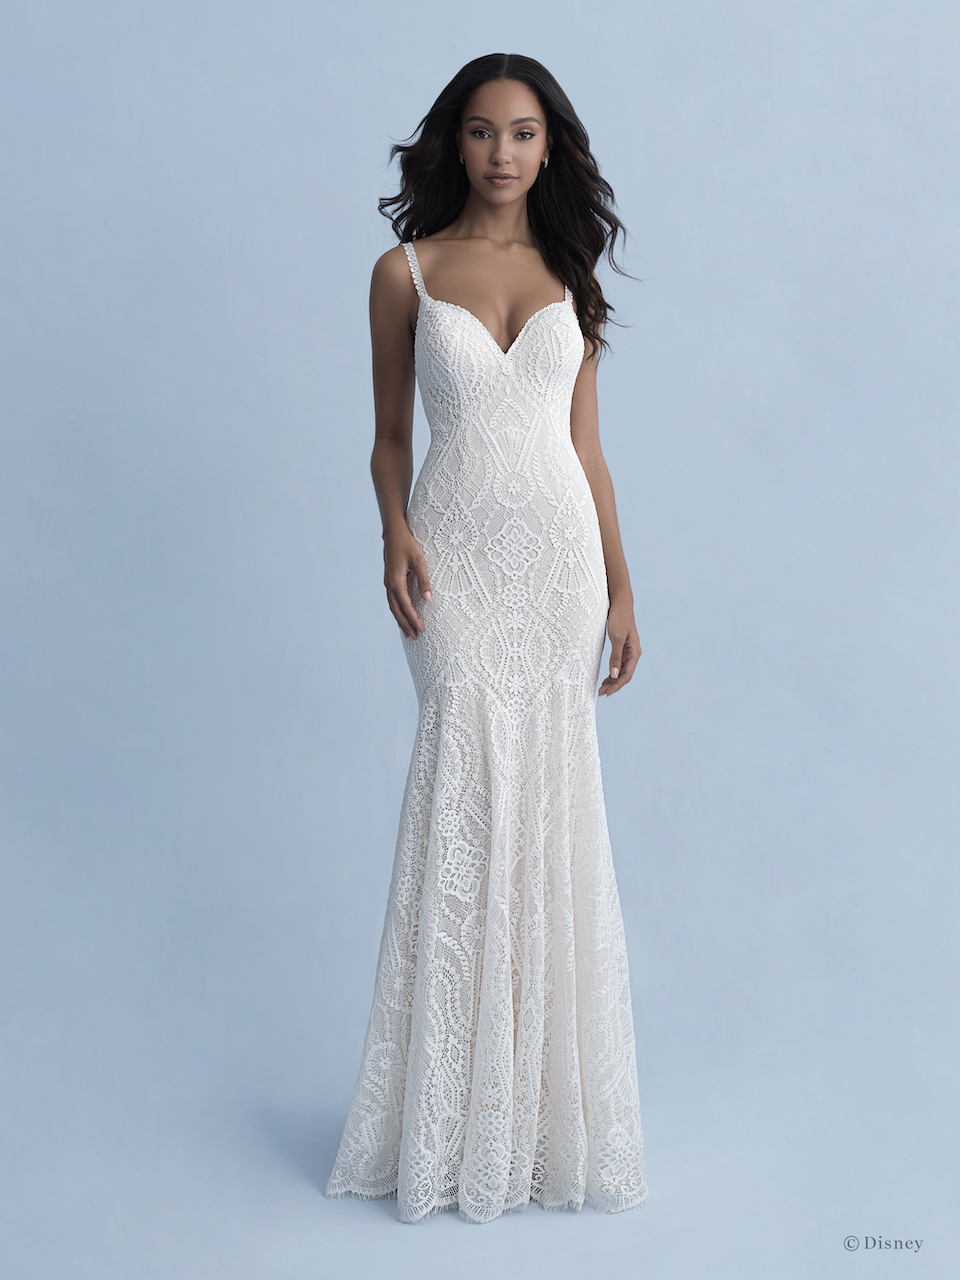 Spaghetti Strap V-neckline Cotton Lace Fit And Flare Wedding Dress by Disney Fairy Tale Weddings Collection - Image 1